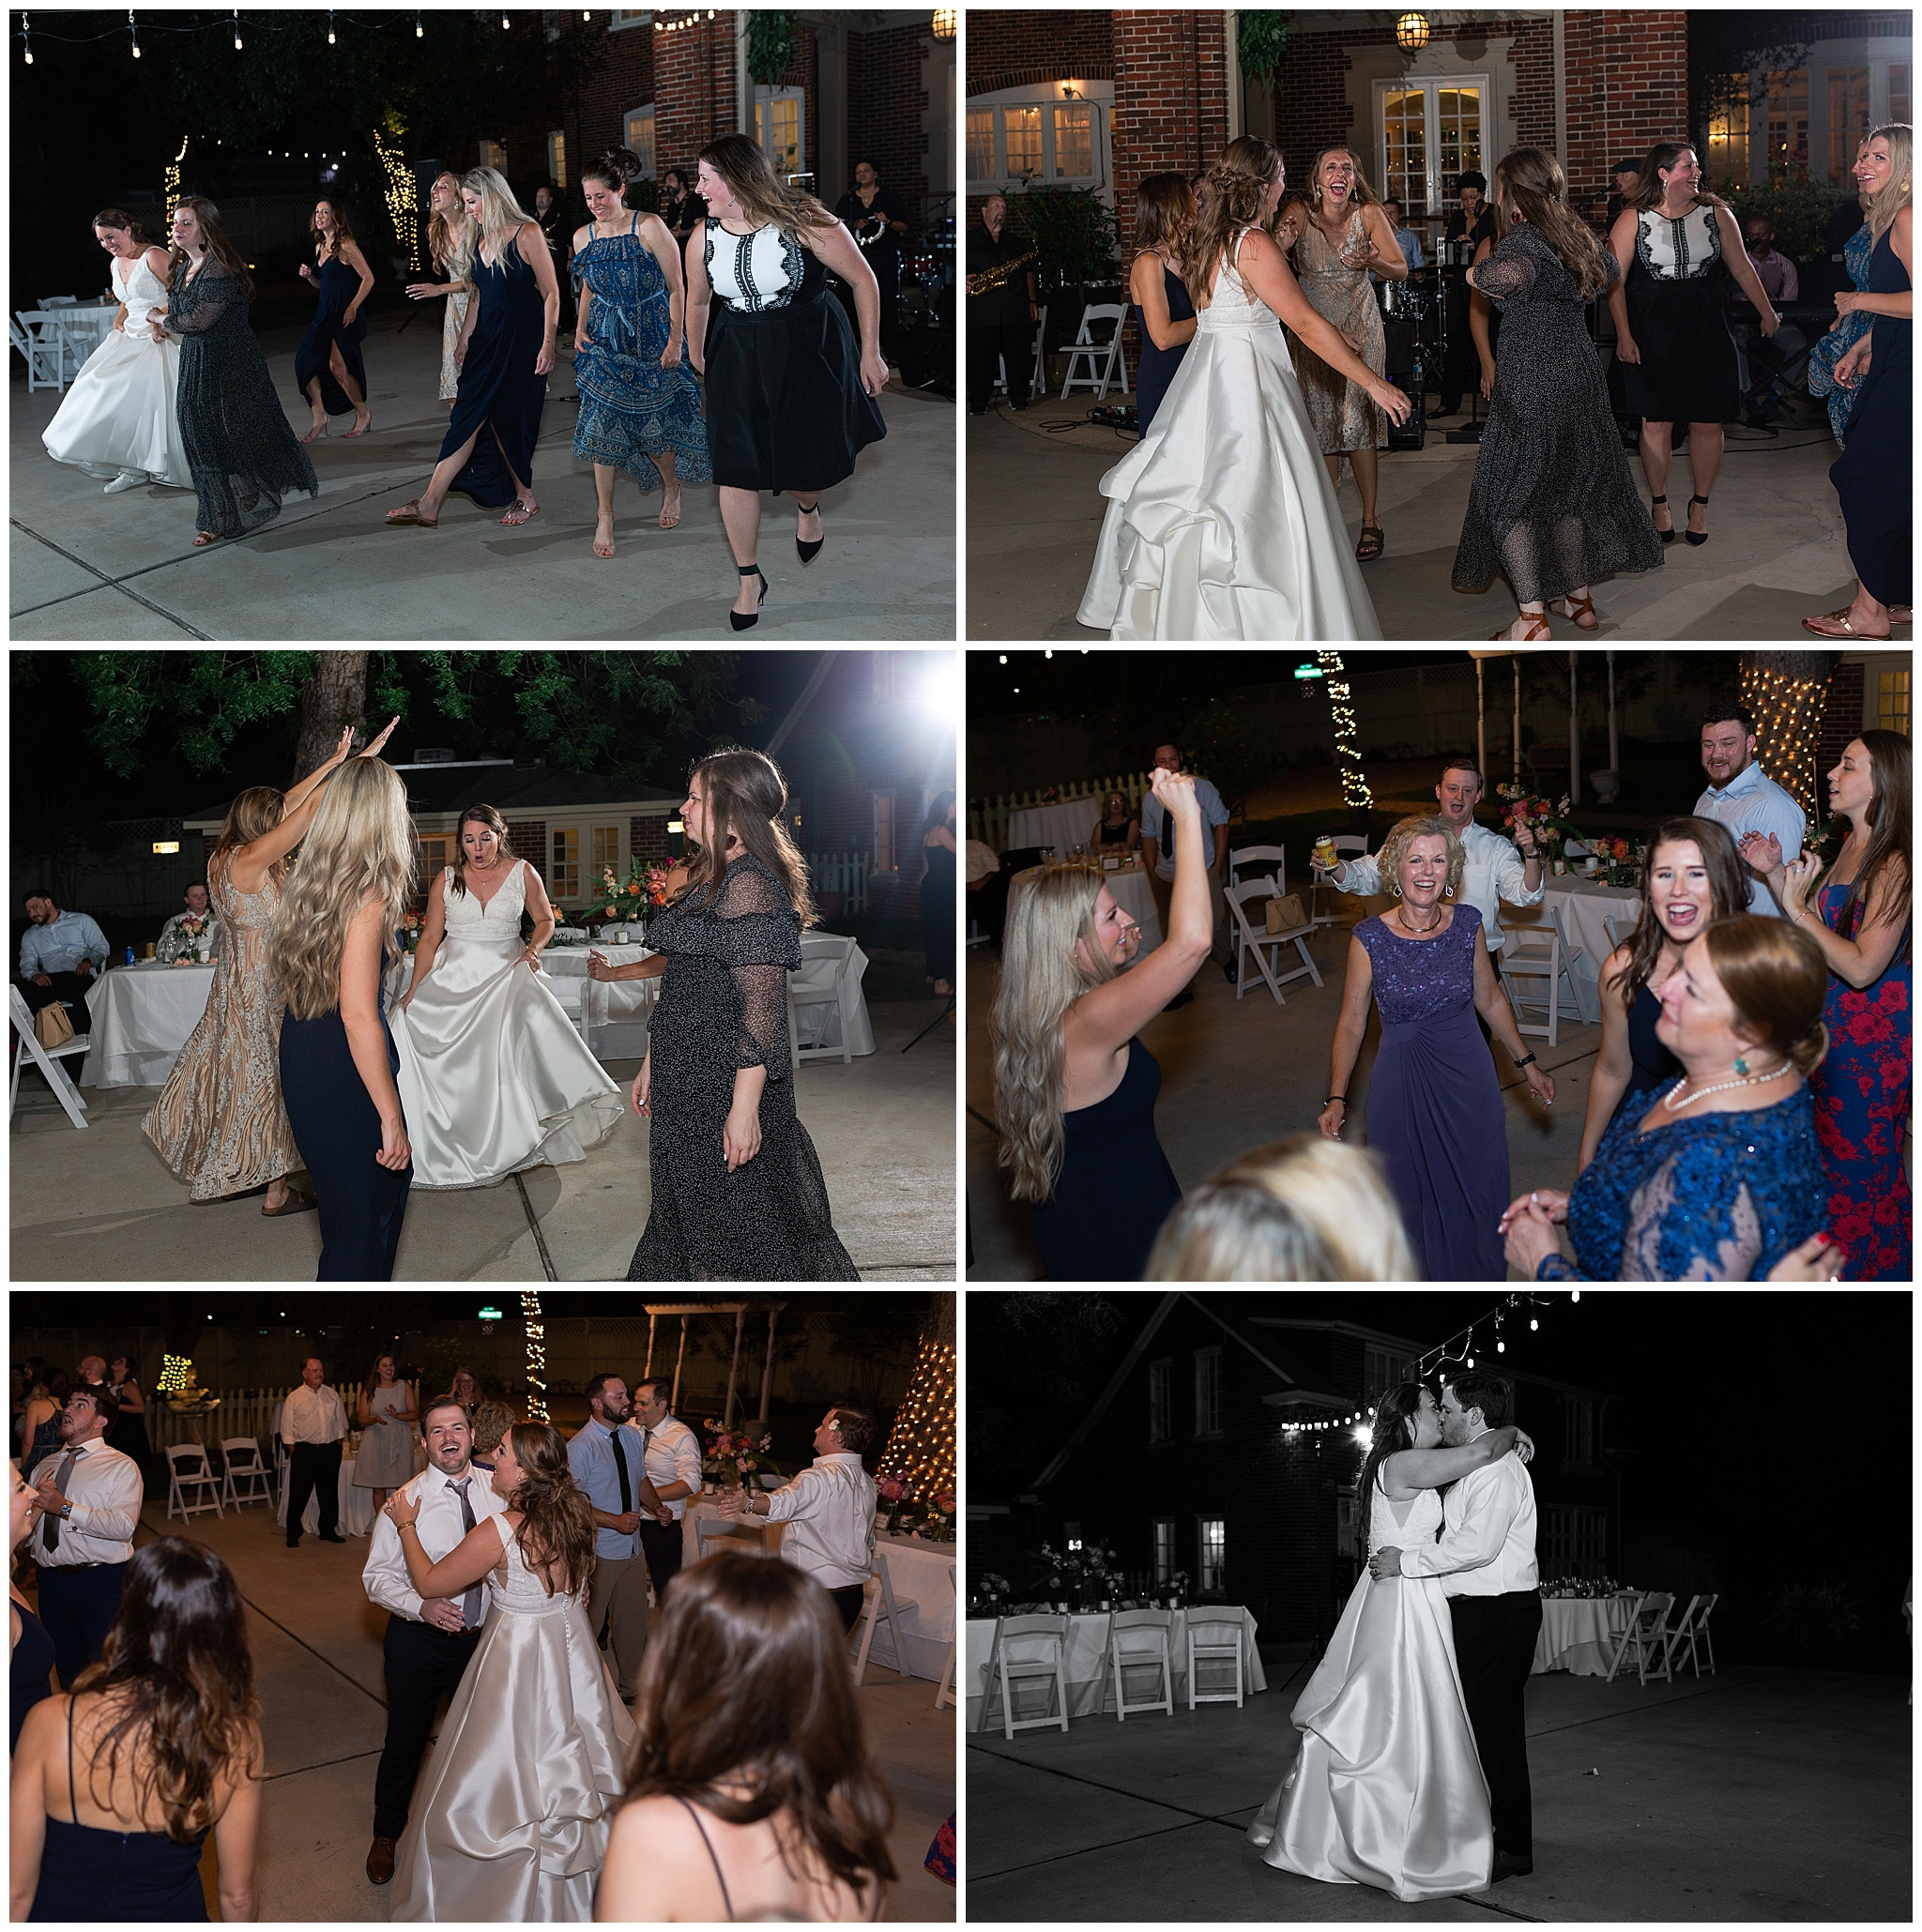 wedding reception dancing at Astin Mansion in Bryan Texas by Swish and Click Photography